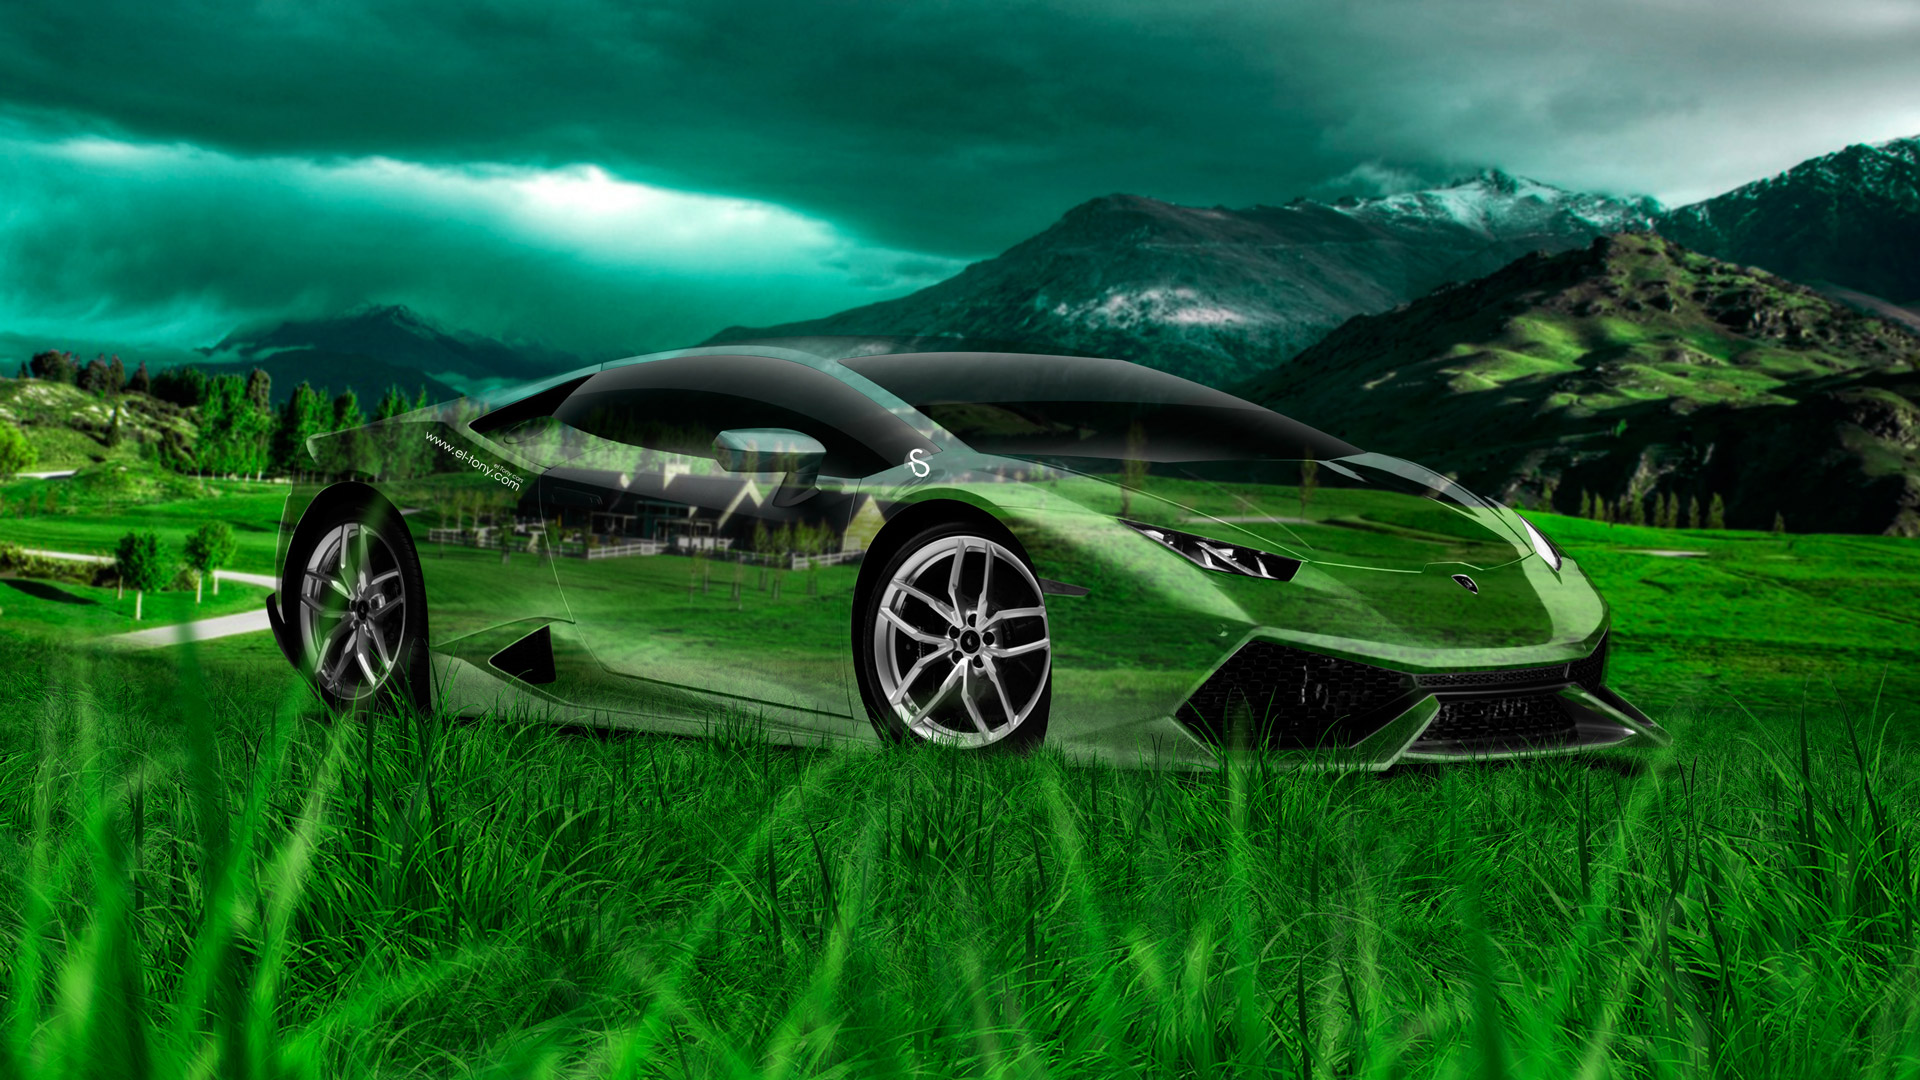 Beau Lamborghini Huracan Crystal Nature Car 2014 Art Photoshop HD  Wallpapers Design By Tony Kokhan Www